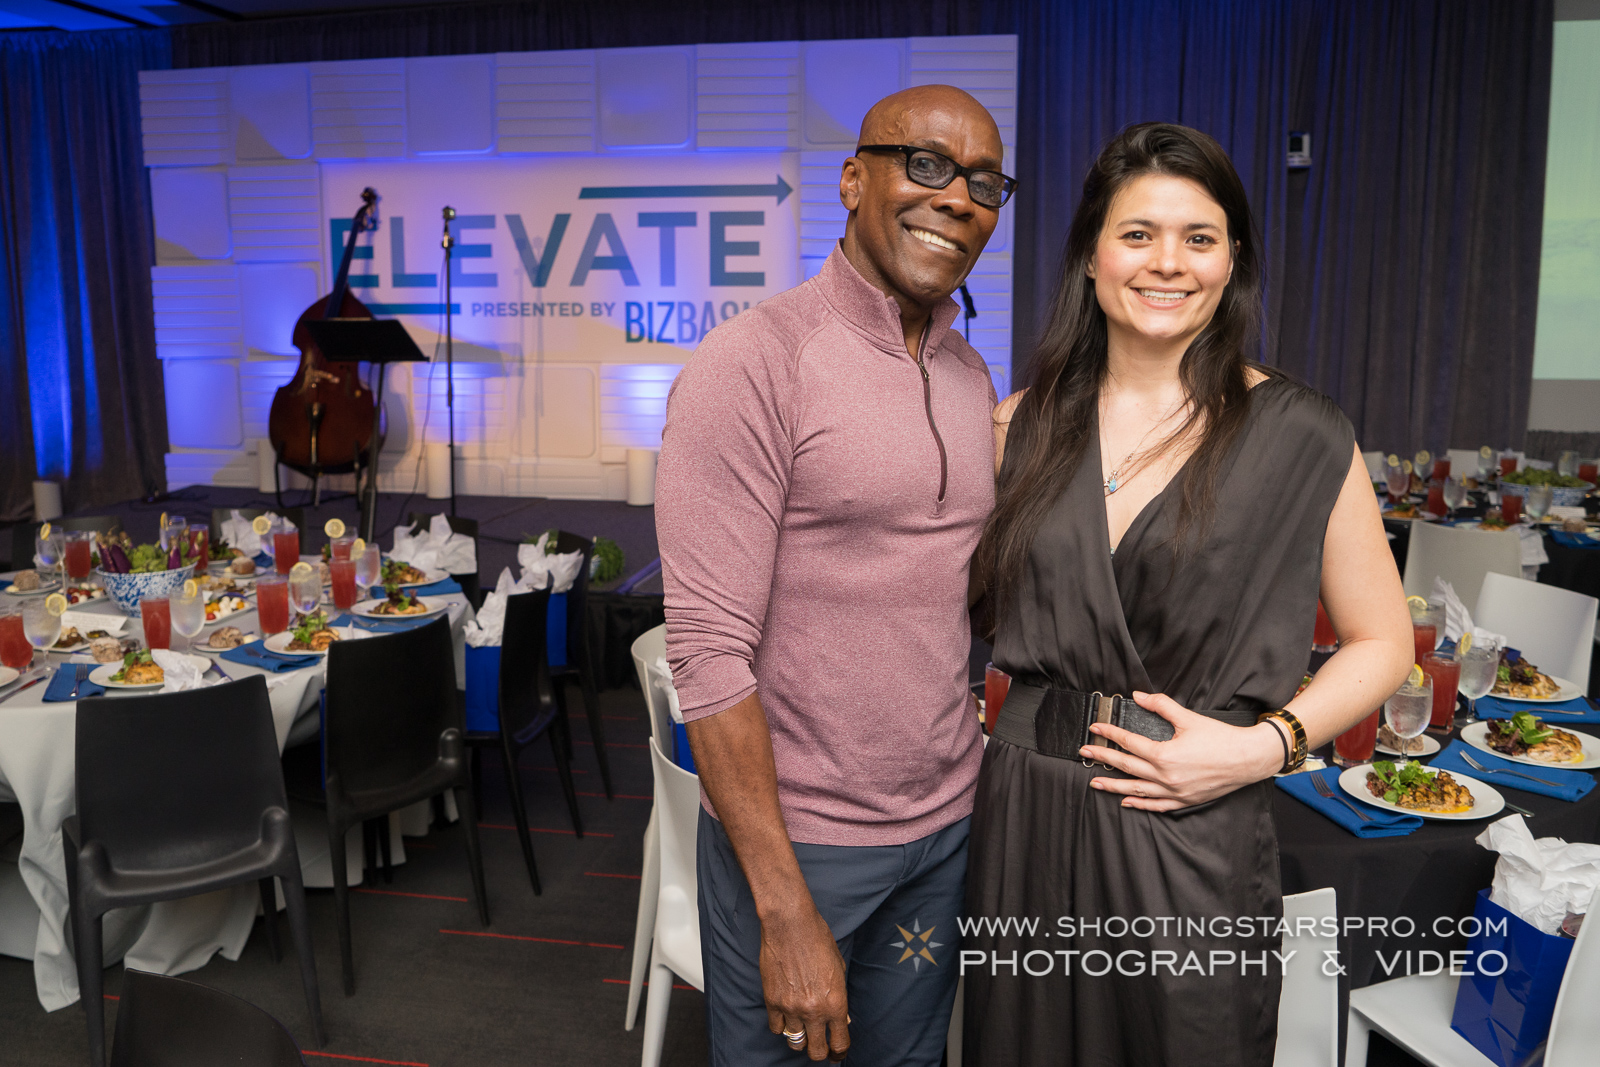 095_Bizbash_Elevate_Photo_By_Shooting_Stars_Pro.jpg